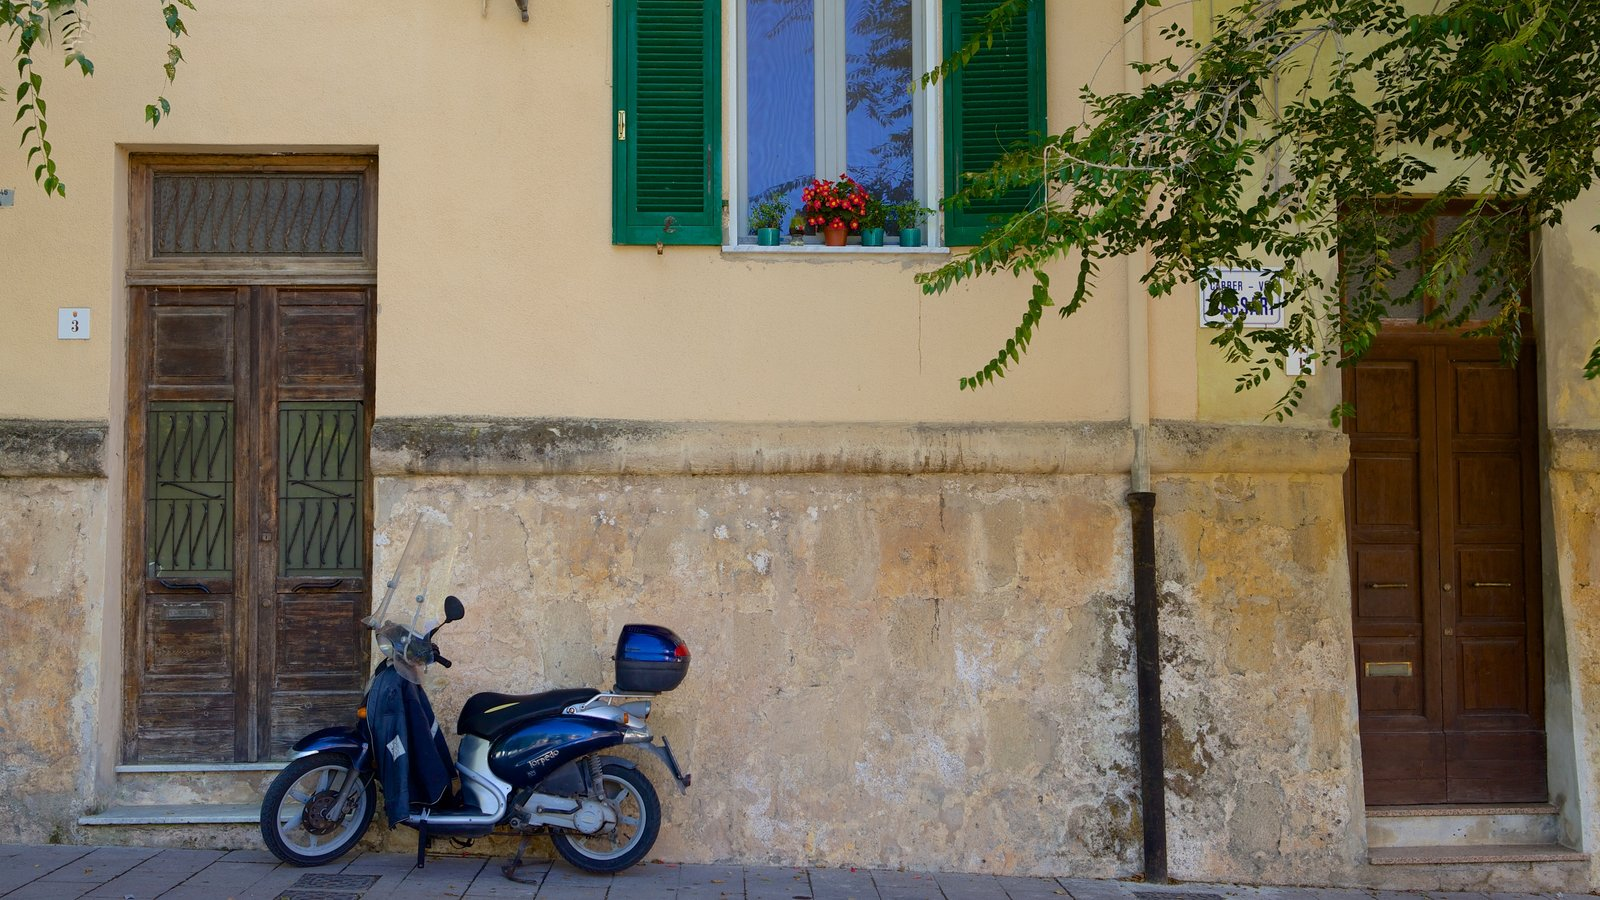 Alghero - Northern Sardinia which includes heritage architecture and a house